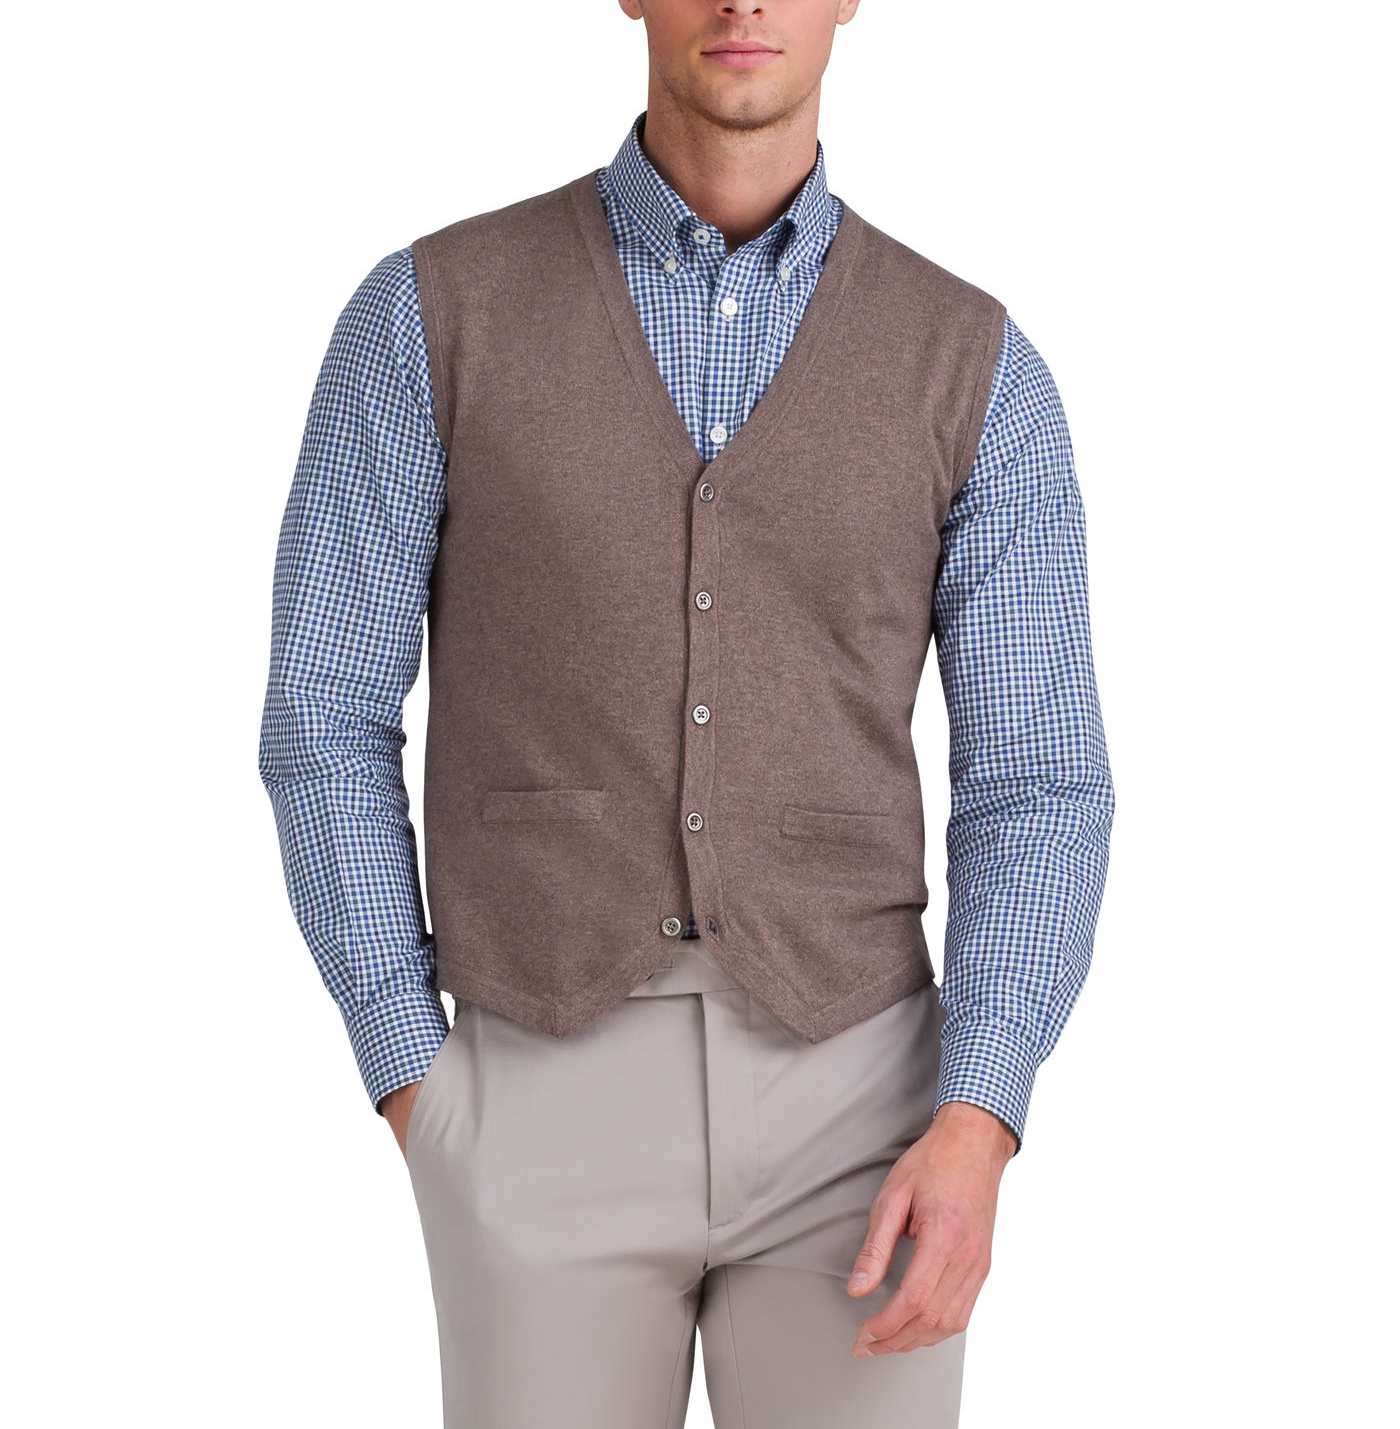 T.M.Lewin Cotton Cashmere Iced Coffee Knitted Waistcoat